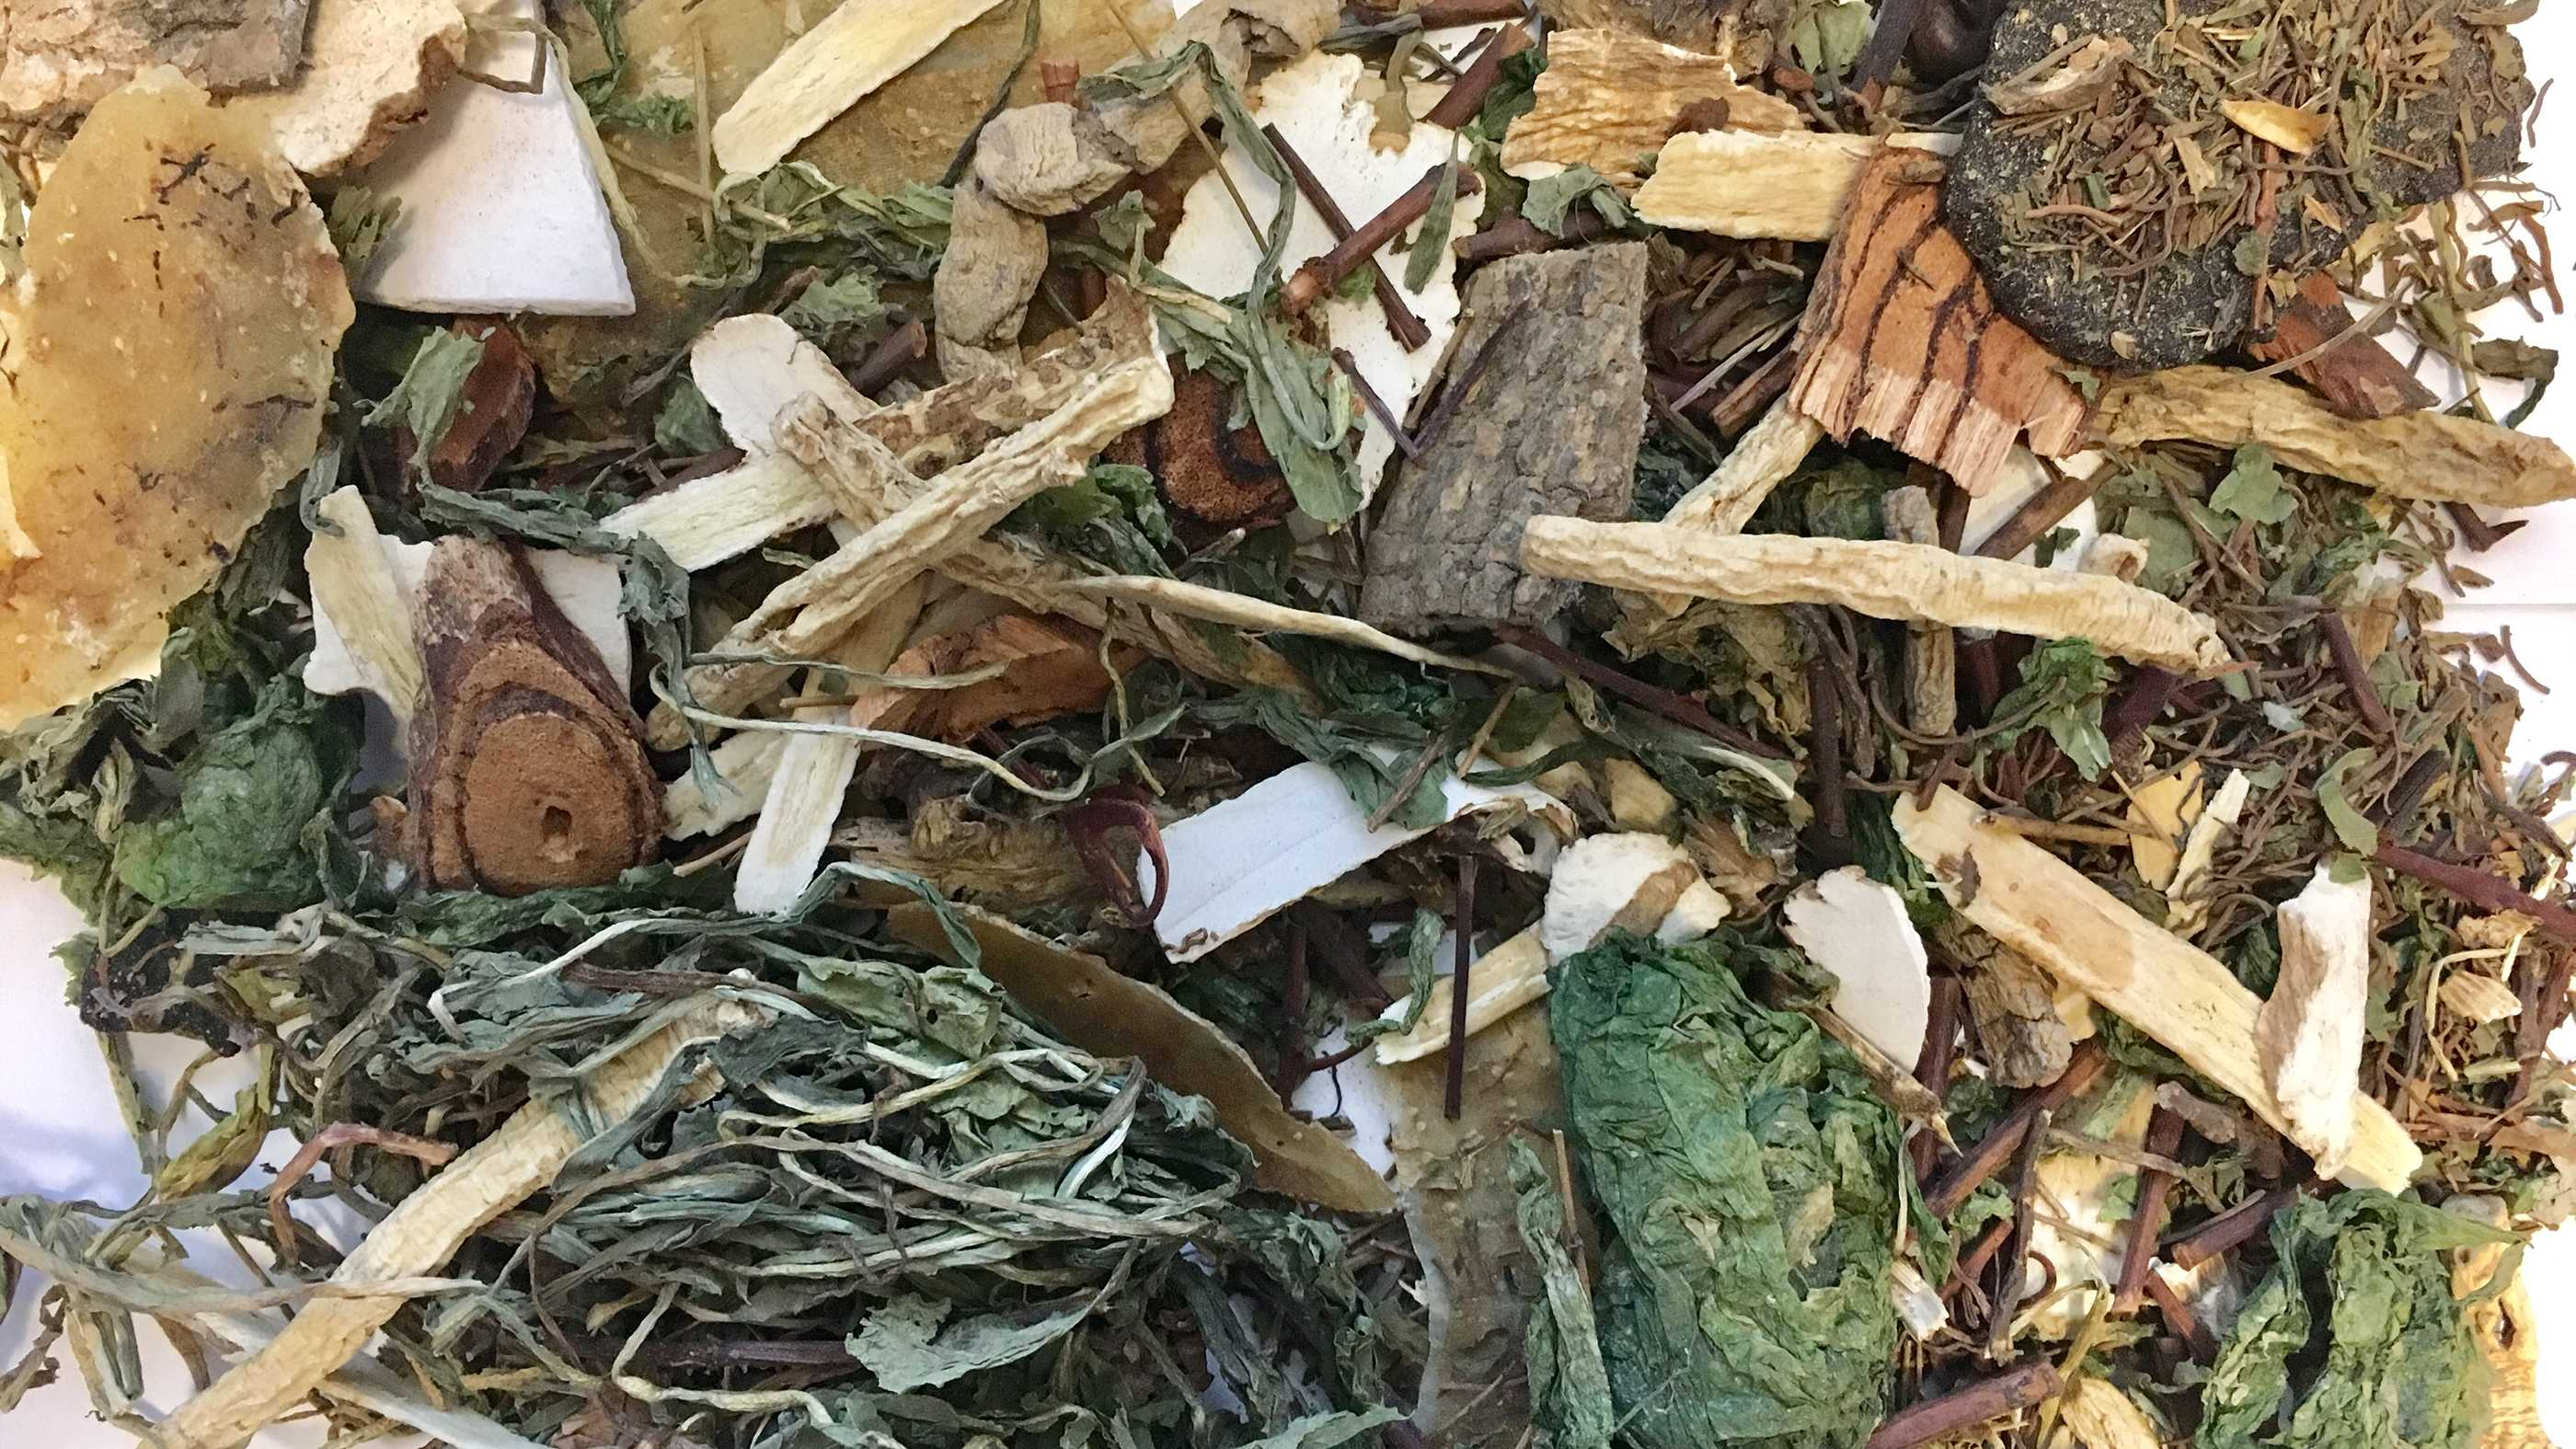 Two people critically ill after drinking toxic herbal tea